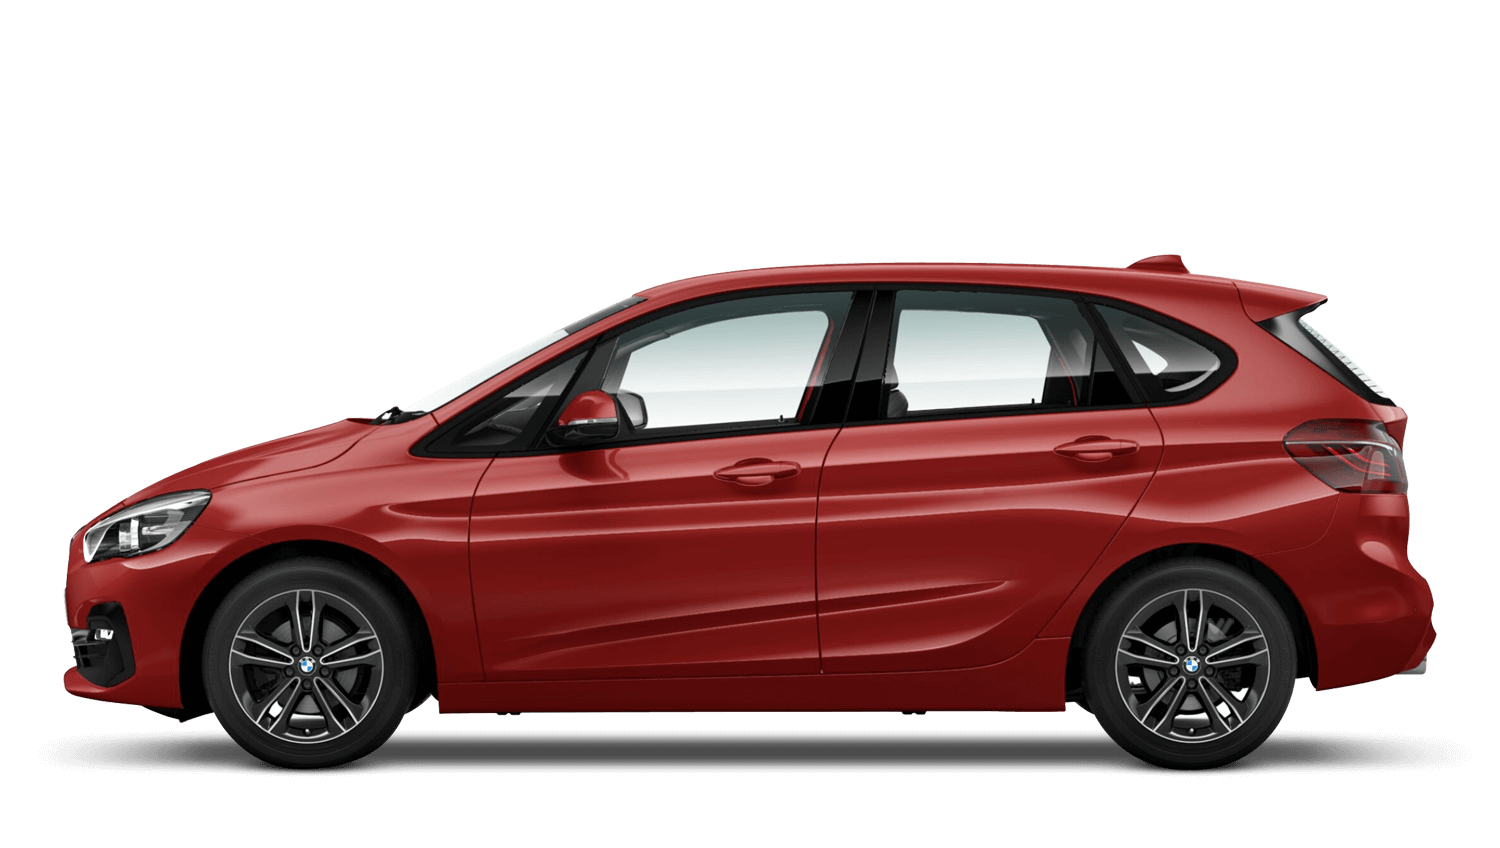 Flamenco Red (Xirallic) BMW 2 Series Active Tourer